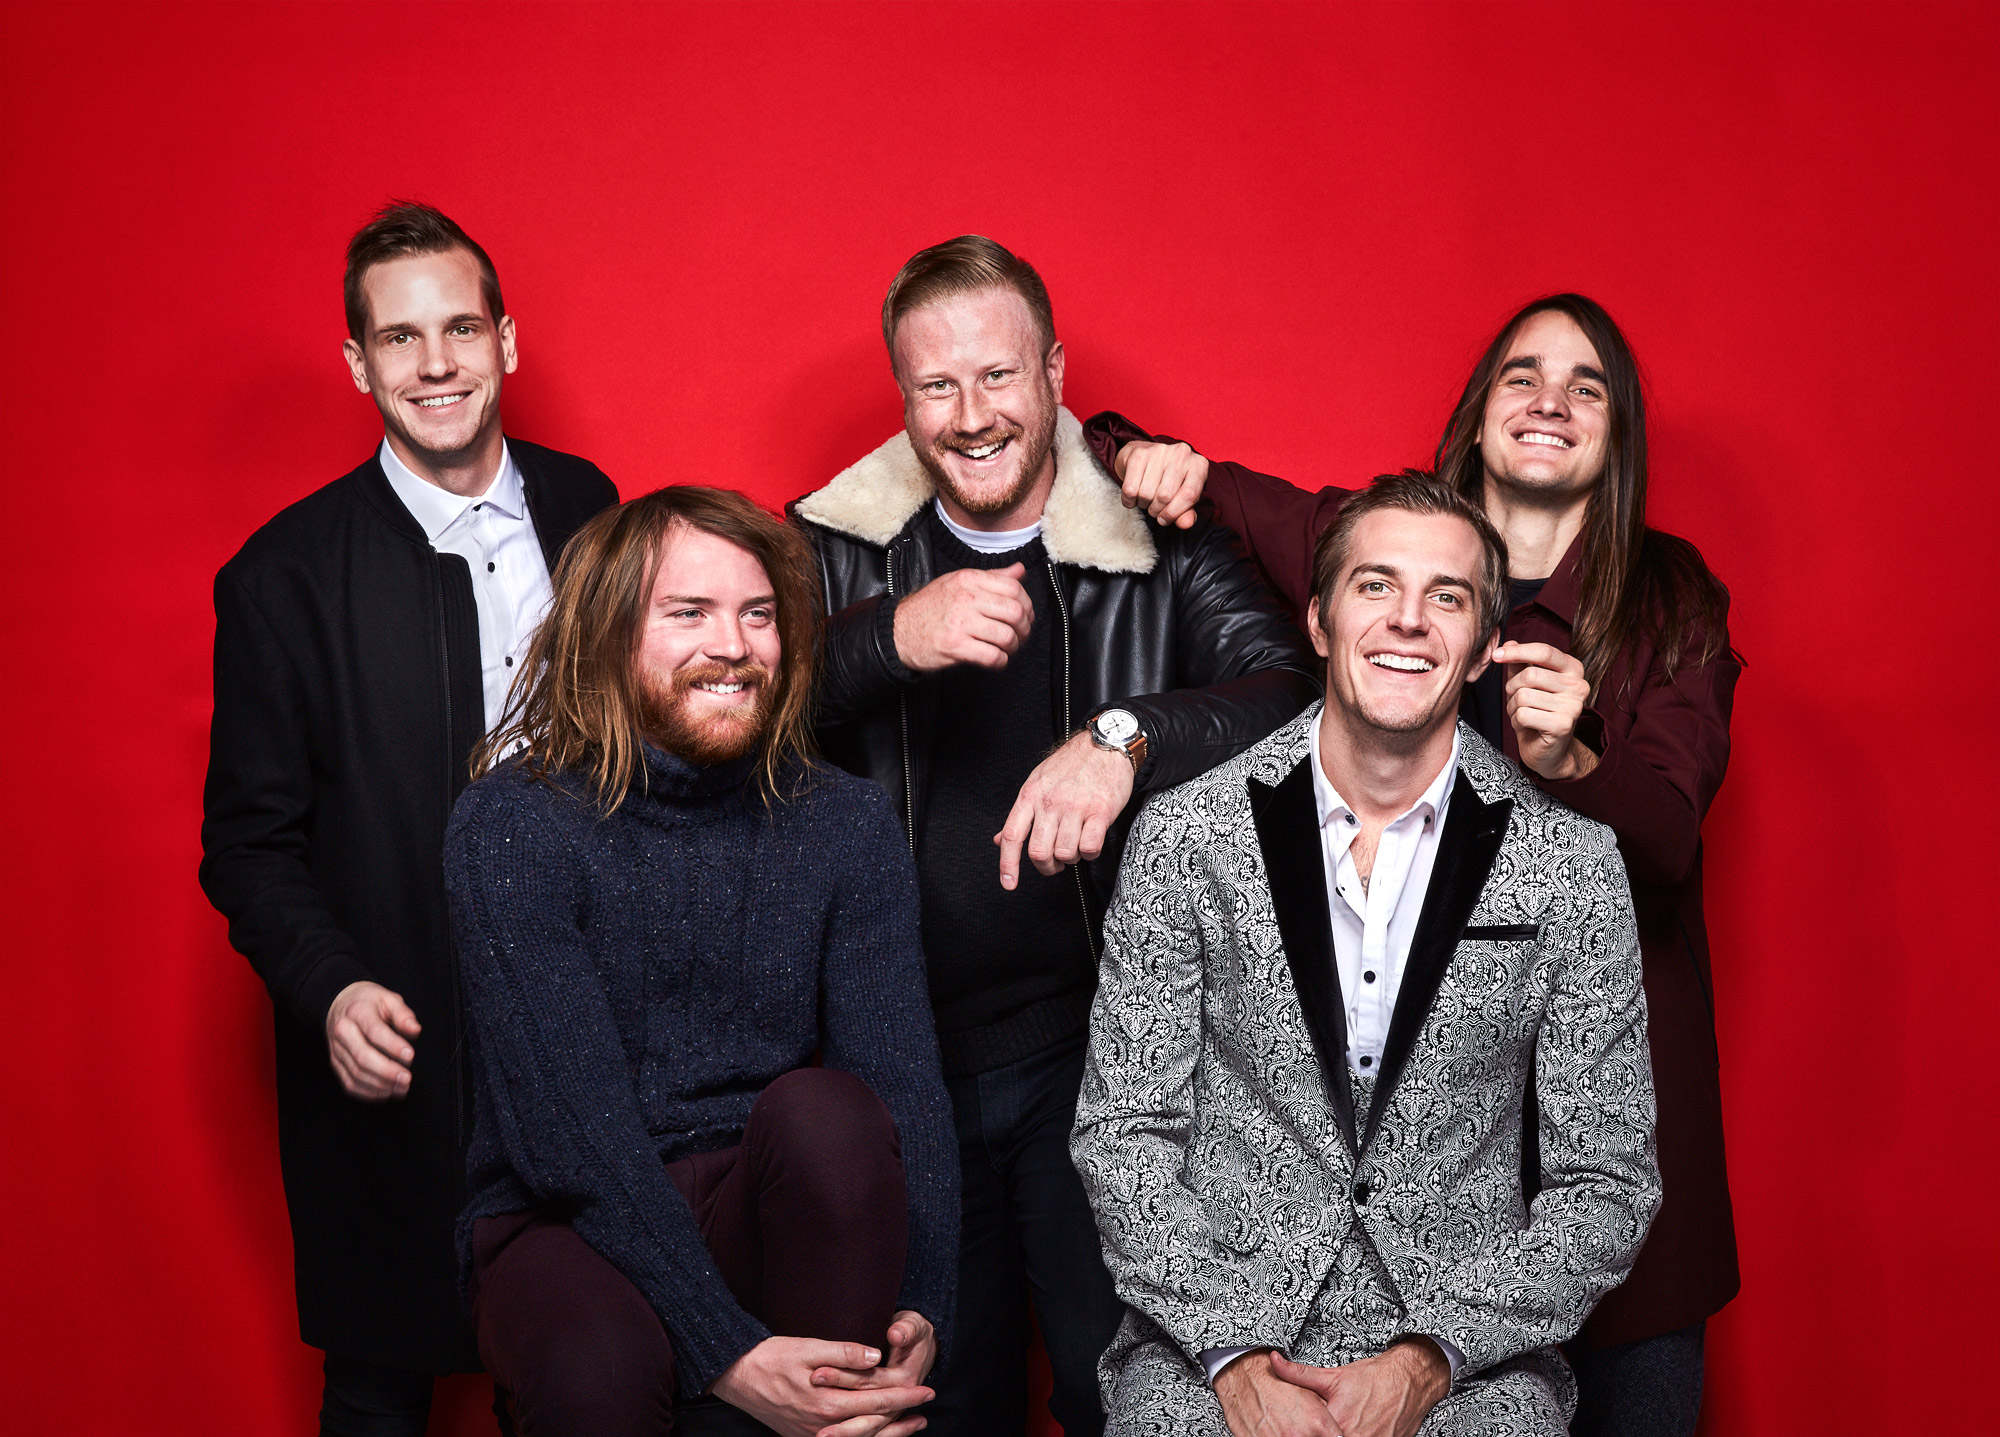 The Maine - Studio Portrait - Stephen Denton Photography - Phoenix AZ Commercial Photographer